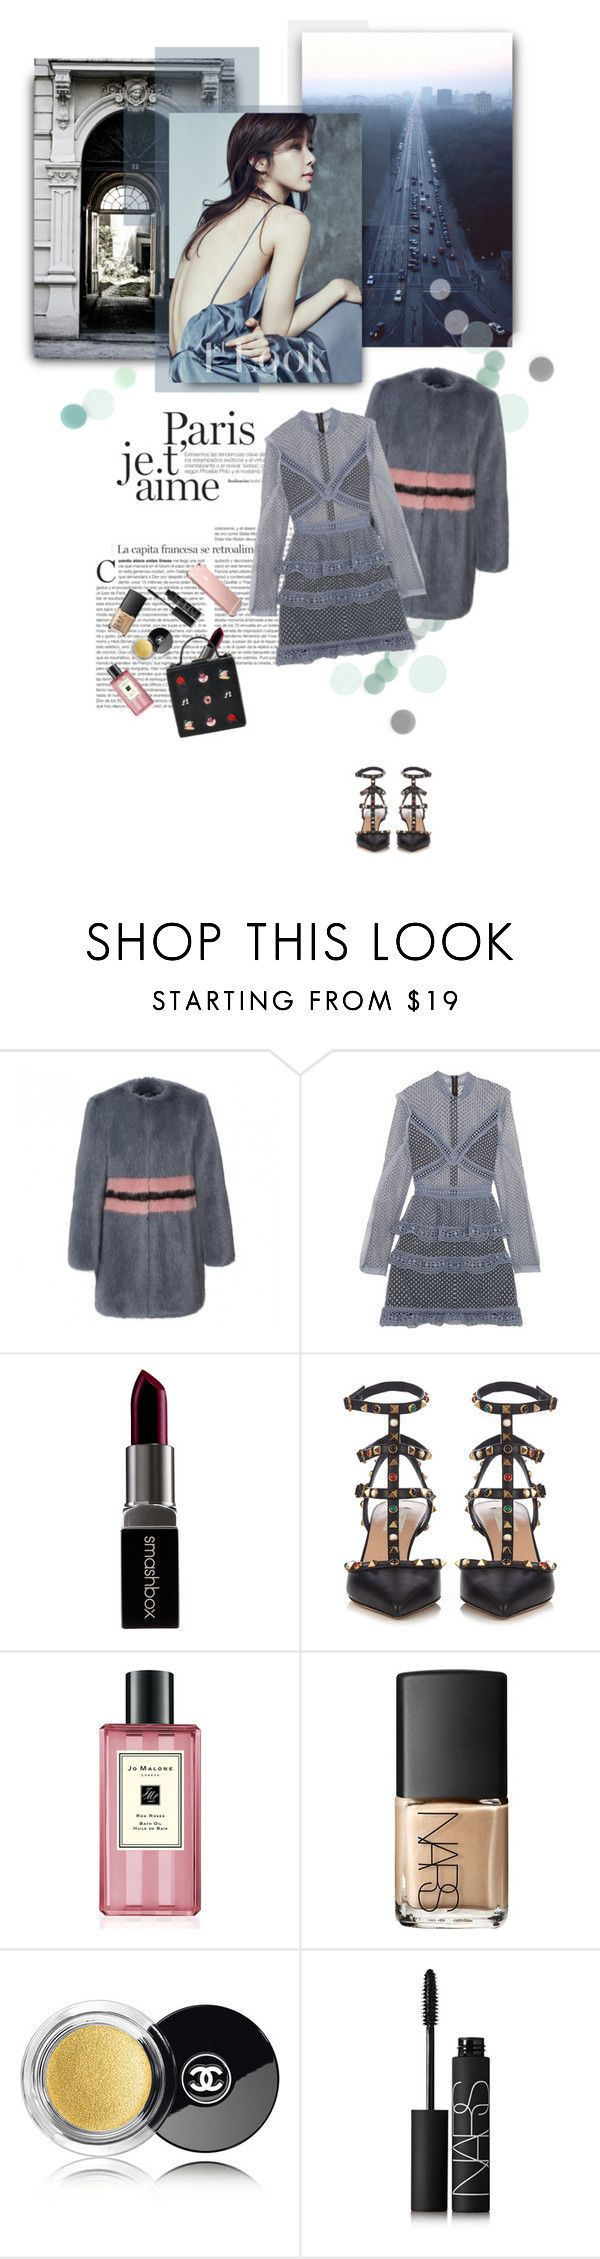 """""""Lost in the Moment"""" by anny-bcc ❤ liked on Polyvore featuring Paul Frank, self-portrait, Smashbox, Valentino, Disney, Jo Malone, NARS Cosmetics, Chanel and yooinna"""